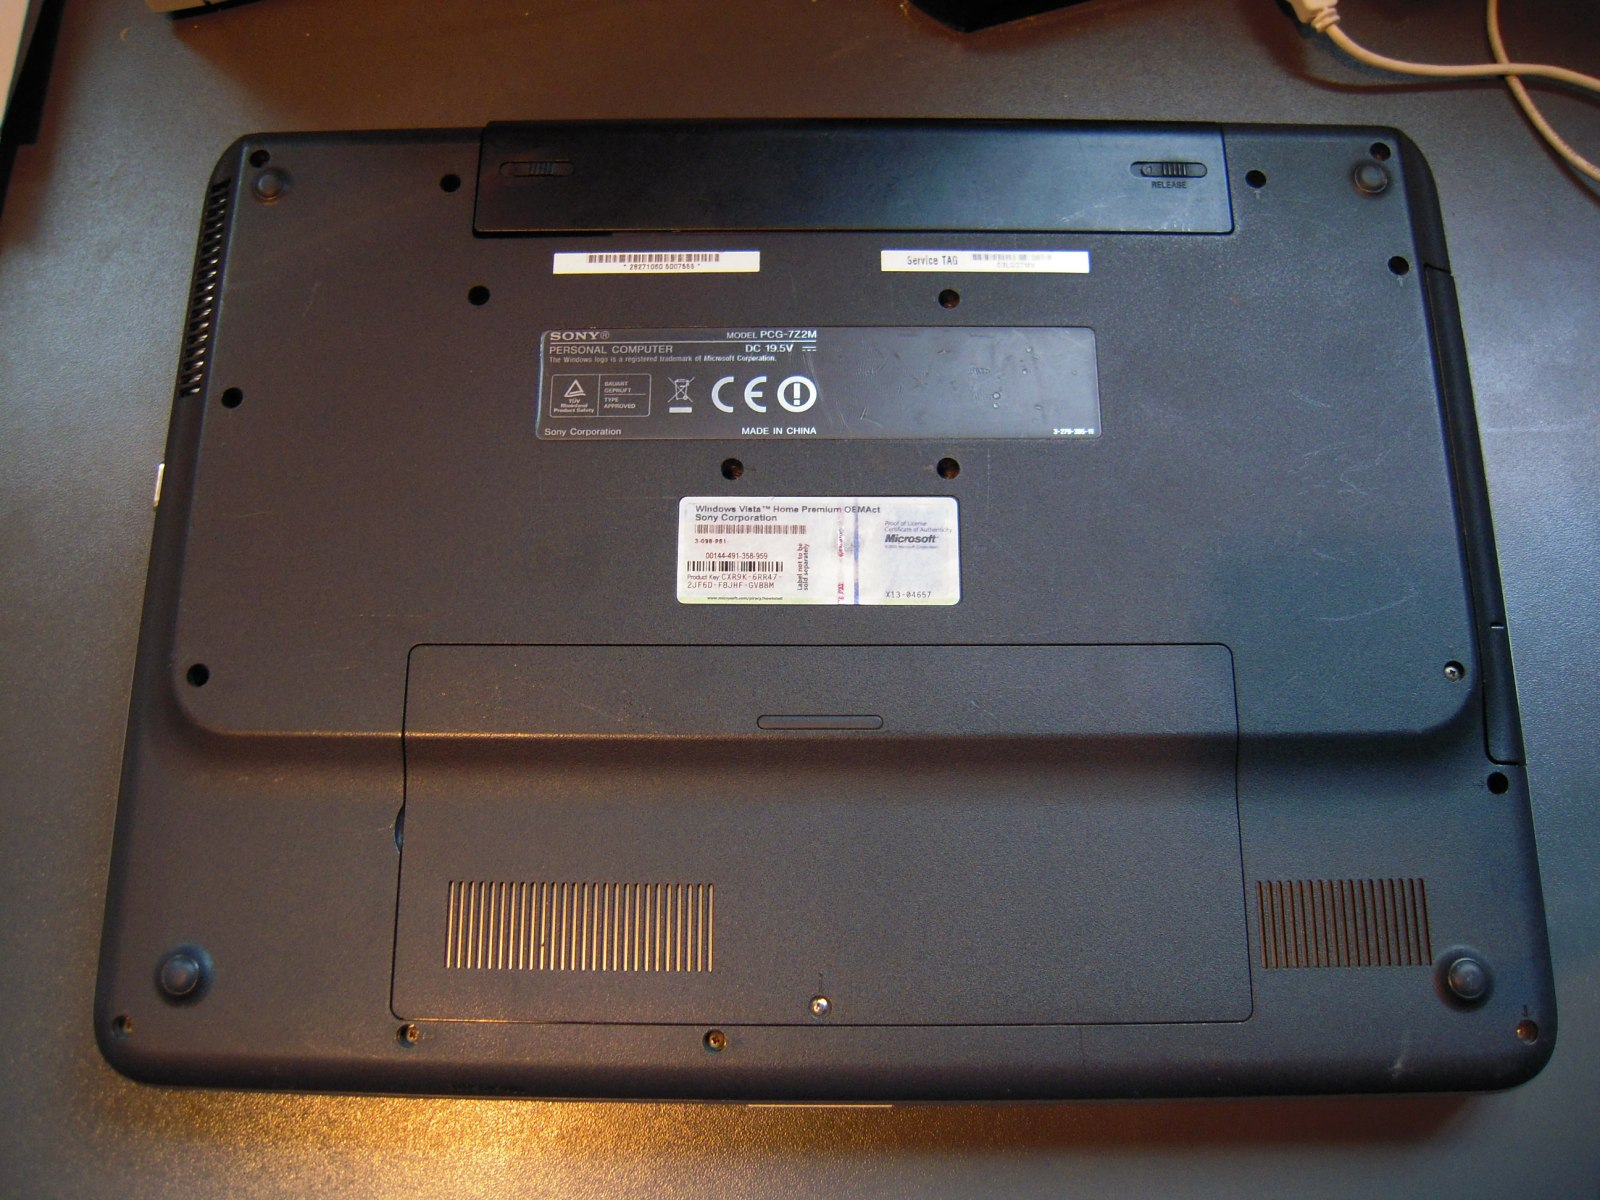 Sony Vaio Preparing Automatic Repair